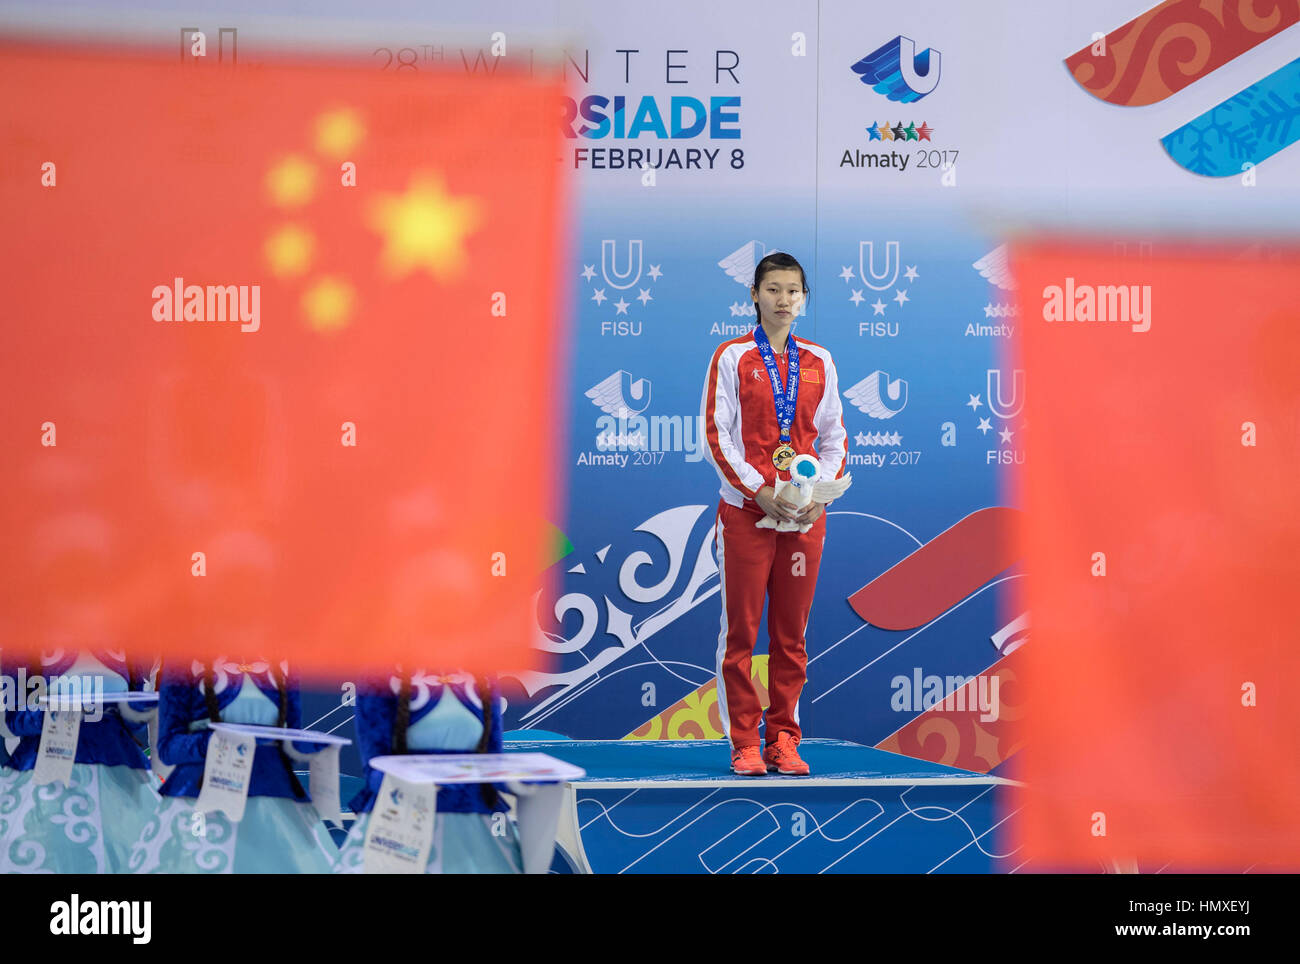 Almaty, Kazakhstan. 6th Feb, 2017. Zang Yize of China poses on the podium during the awarding ceremony for Ladies' - Stock Image